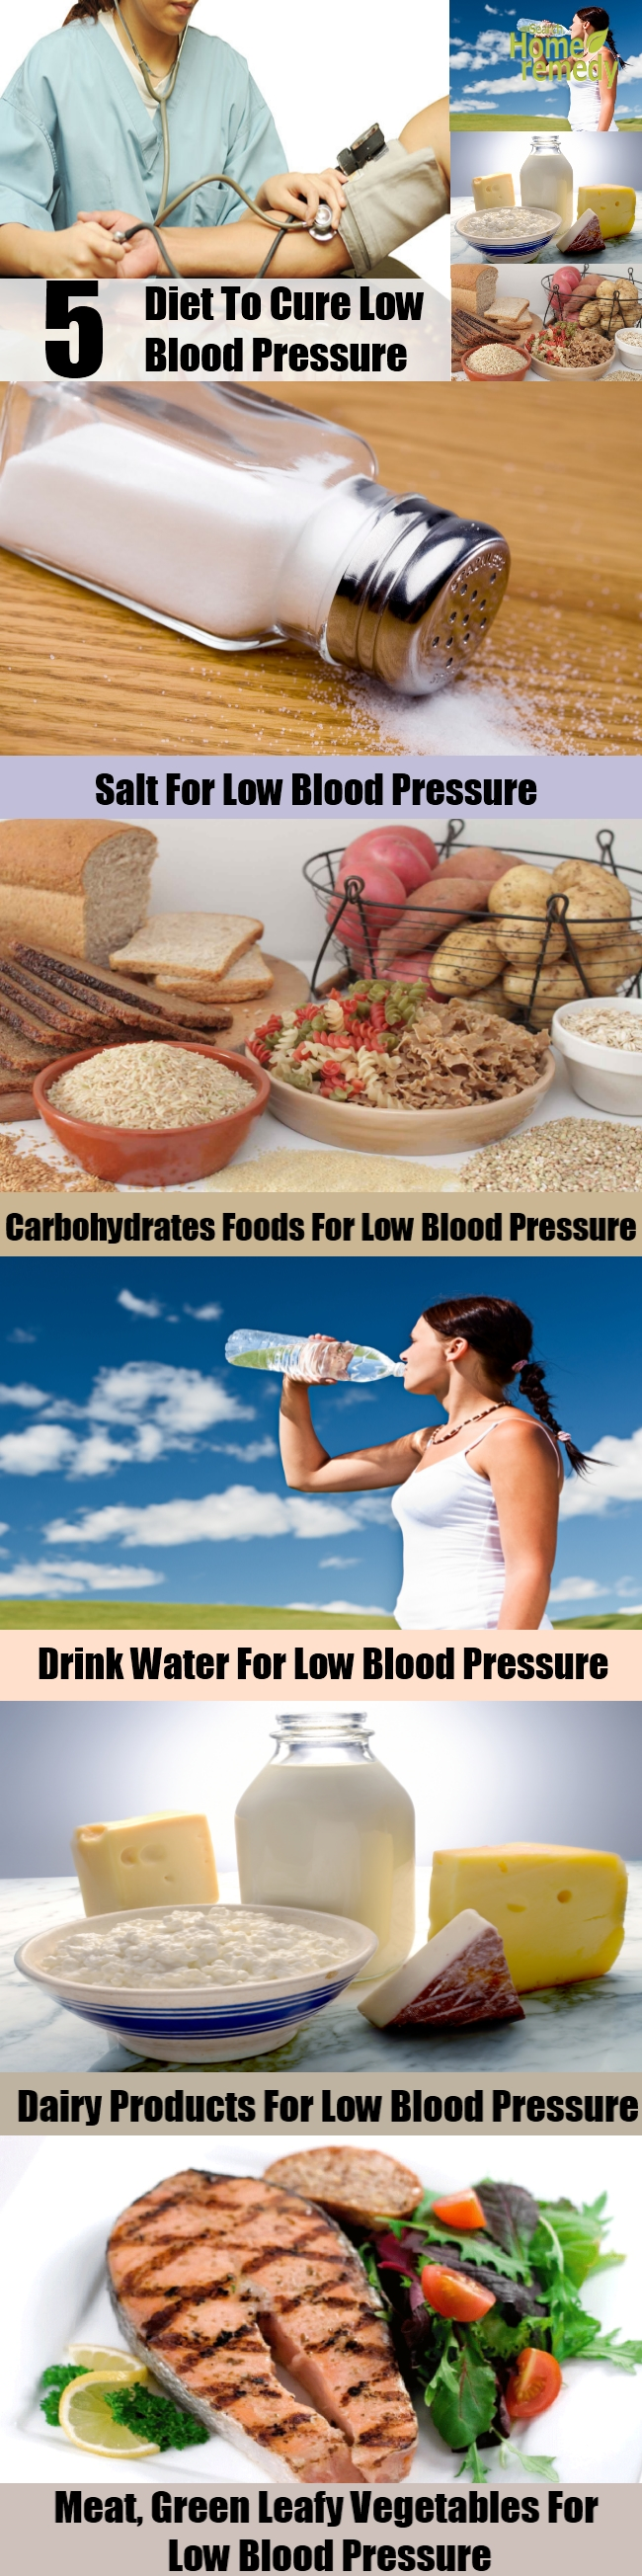 5 Change Of Diet To Cure Low Blood Pressure